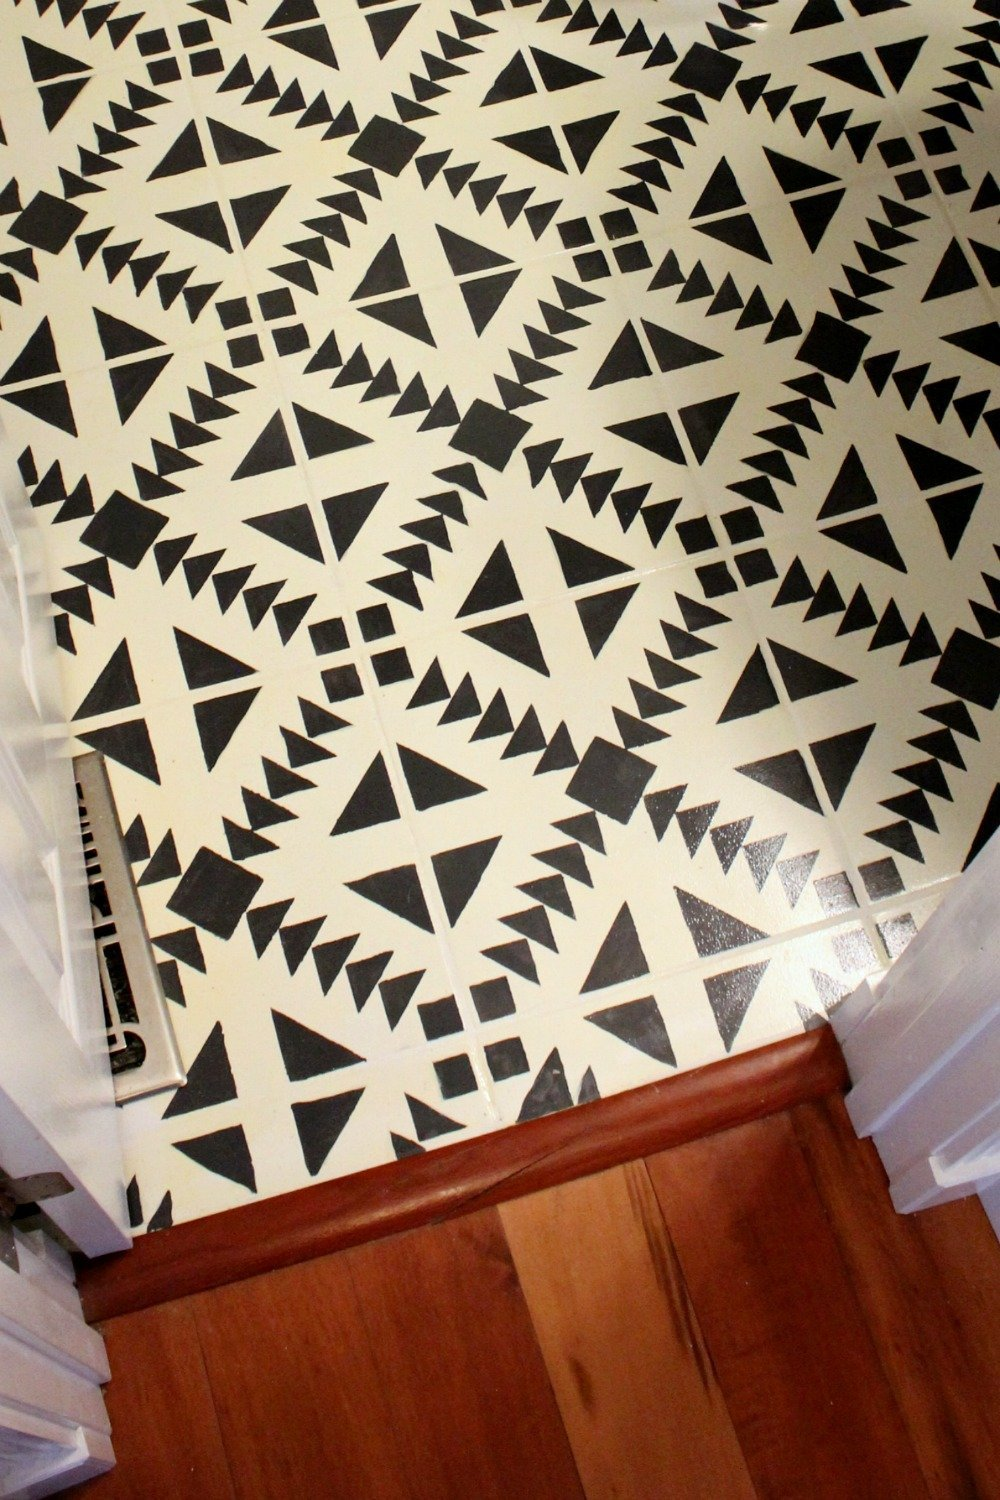 How To Paint A Tile Floor Without Losing Your Mind Organized Ish By Lela Burris